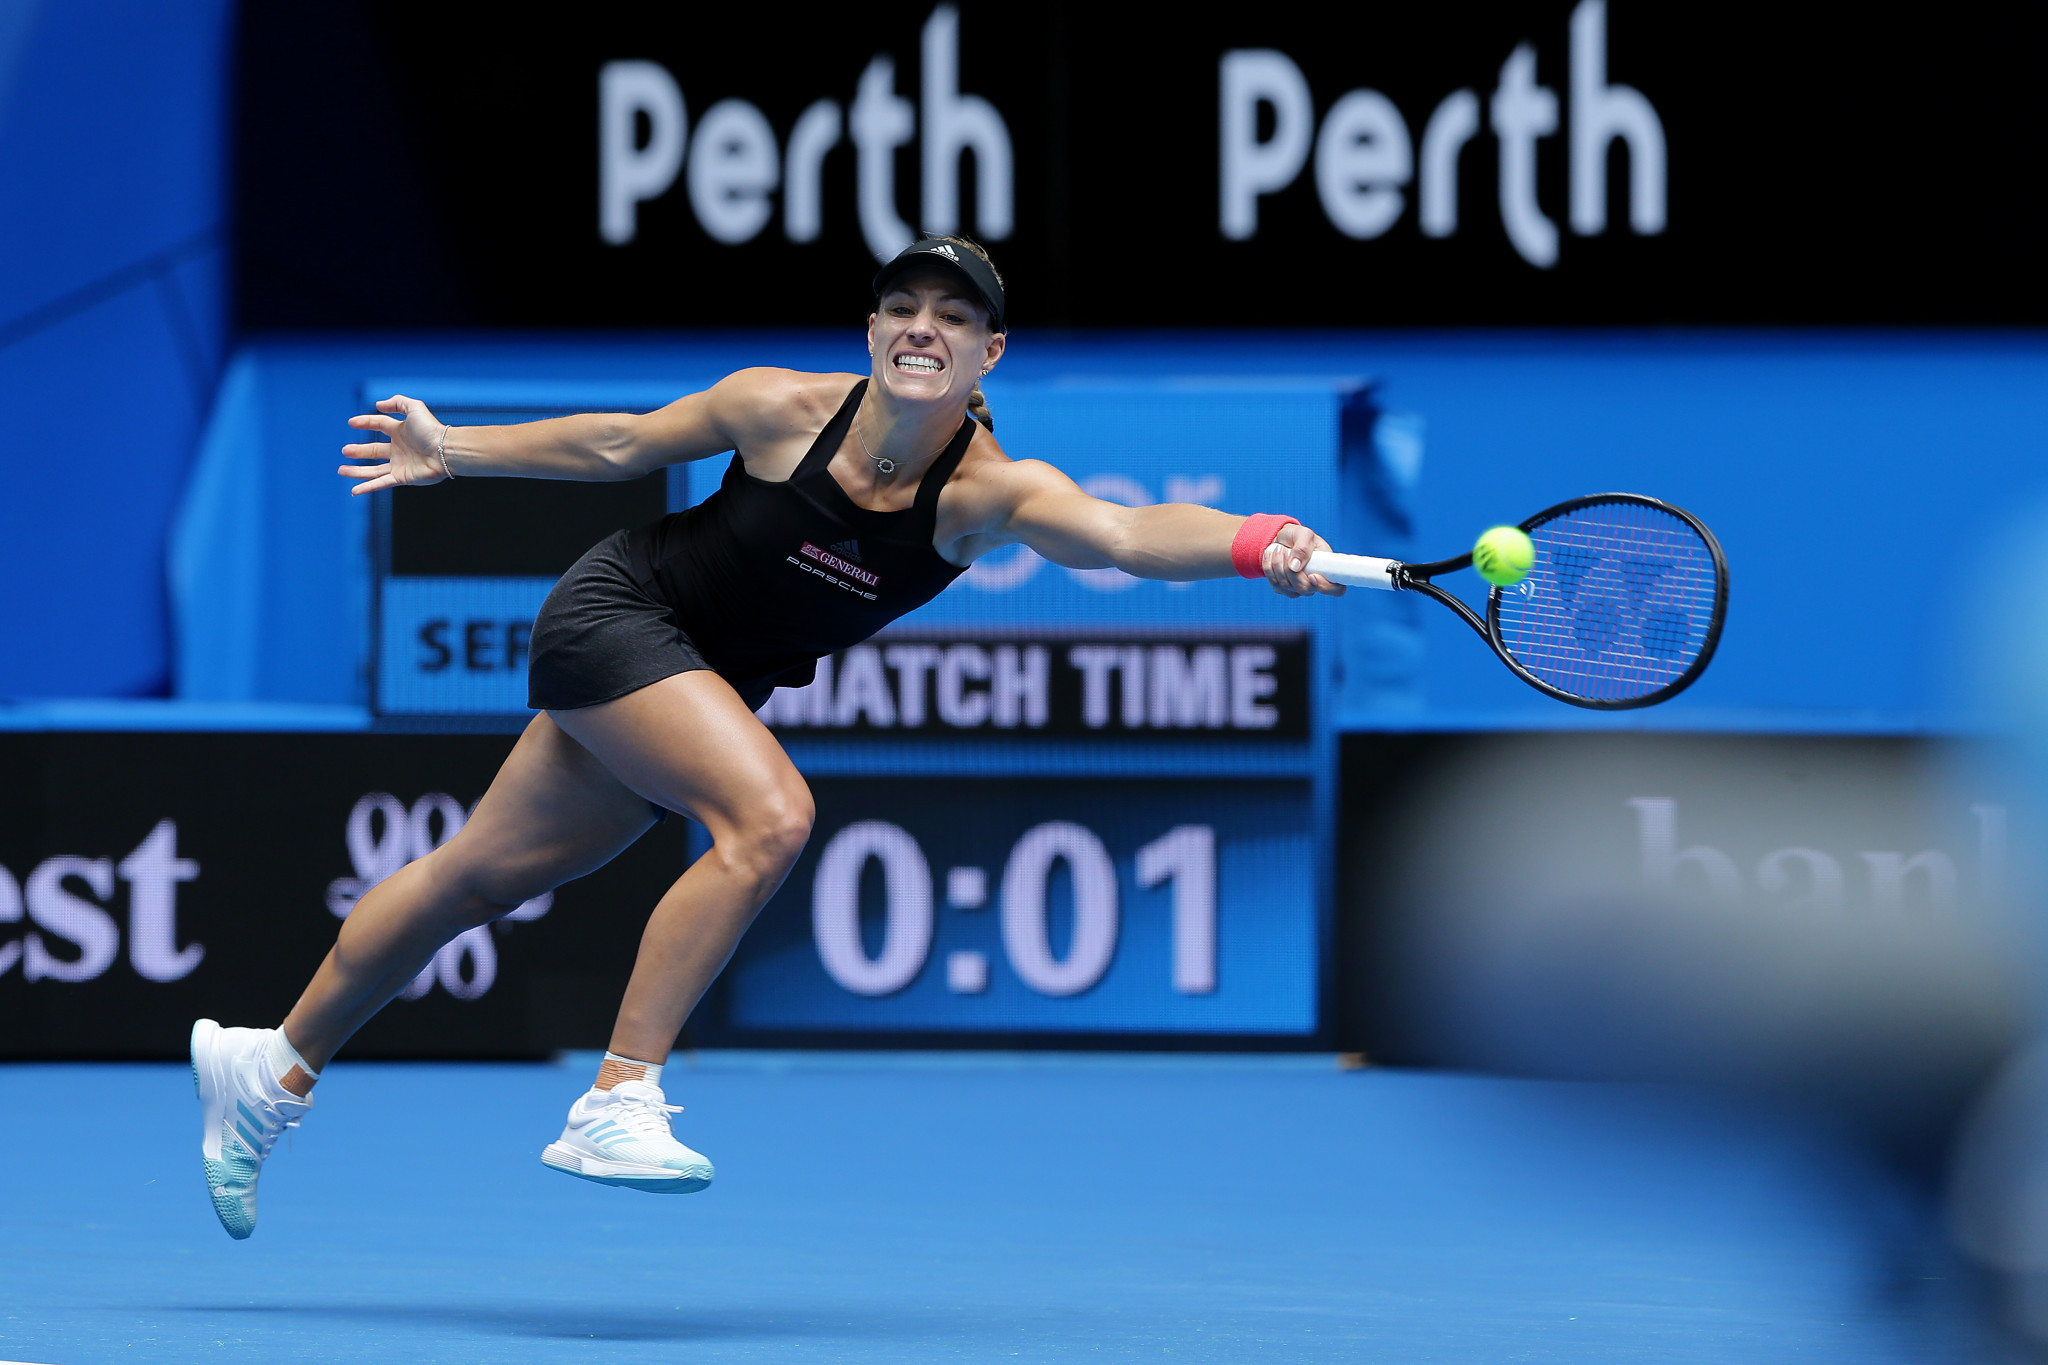 Angelique Kerber of Germany defeated Alize Cornet of France at the Hopman Cup in Perth ©Getty Images